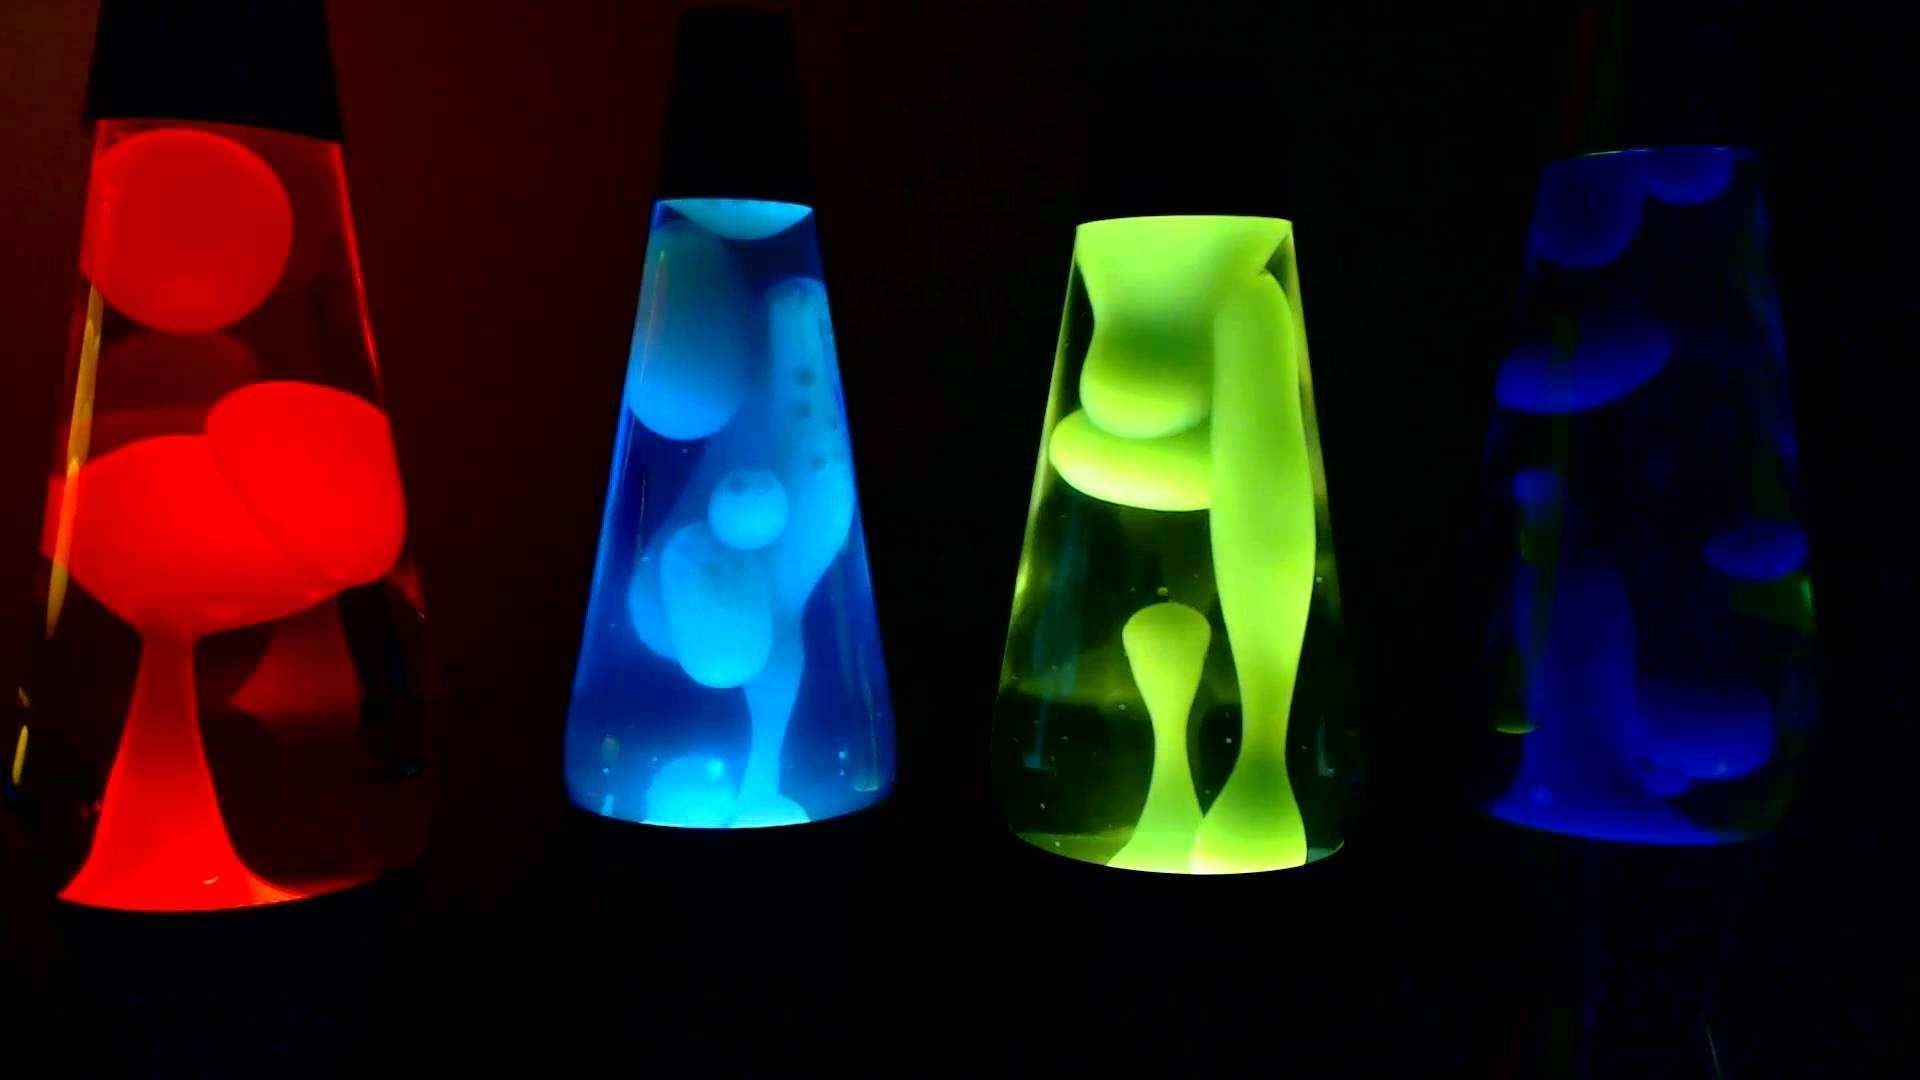 Lava Lamp Live Wallpaper Awesome Lava Lamp Wallpaper Animated